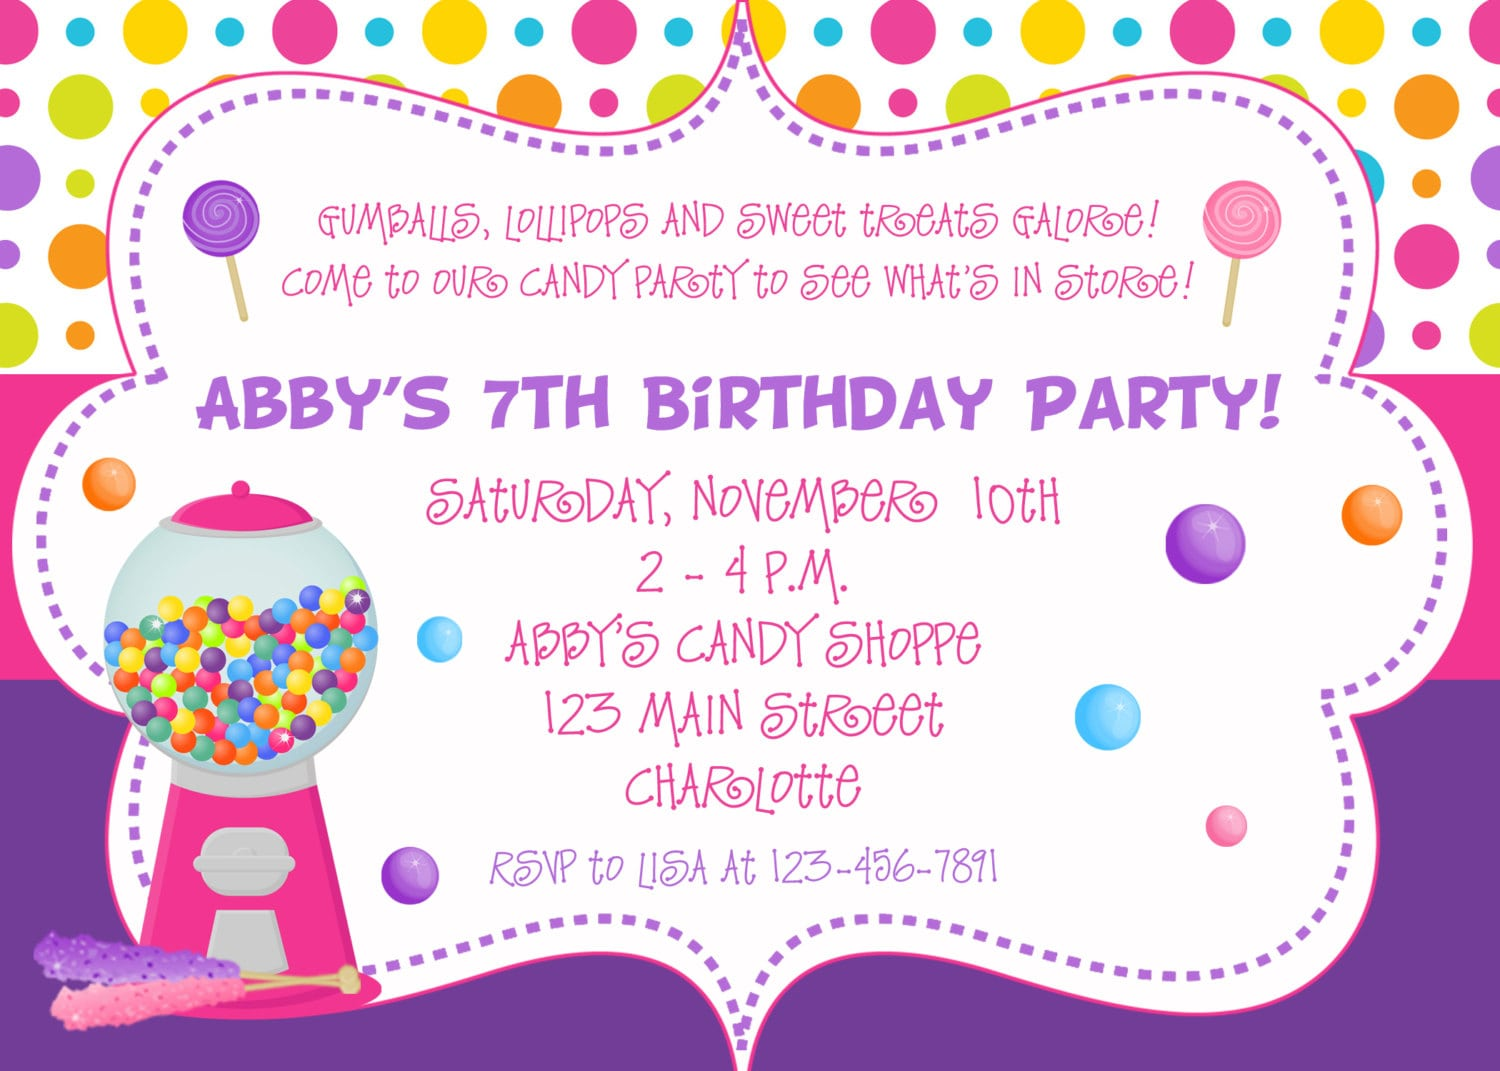 Colors   Diy 18th Birthday Party Invitations Together With 18th